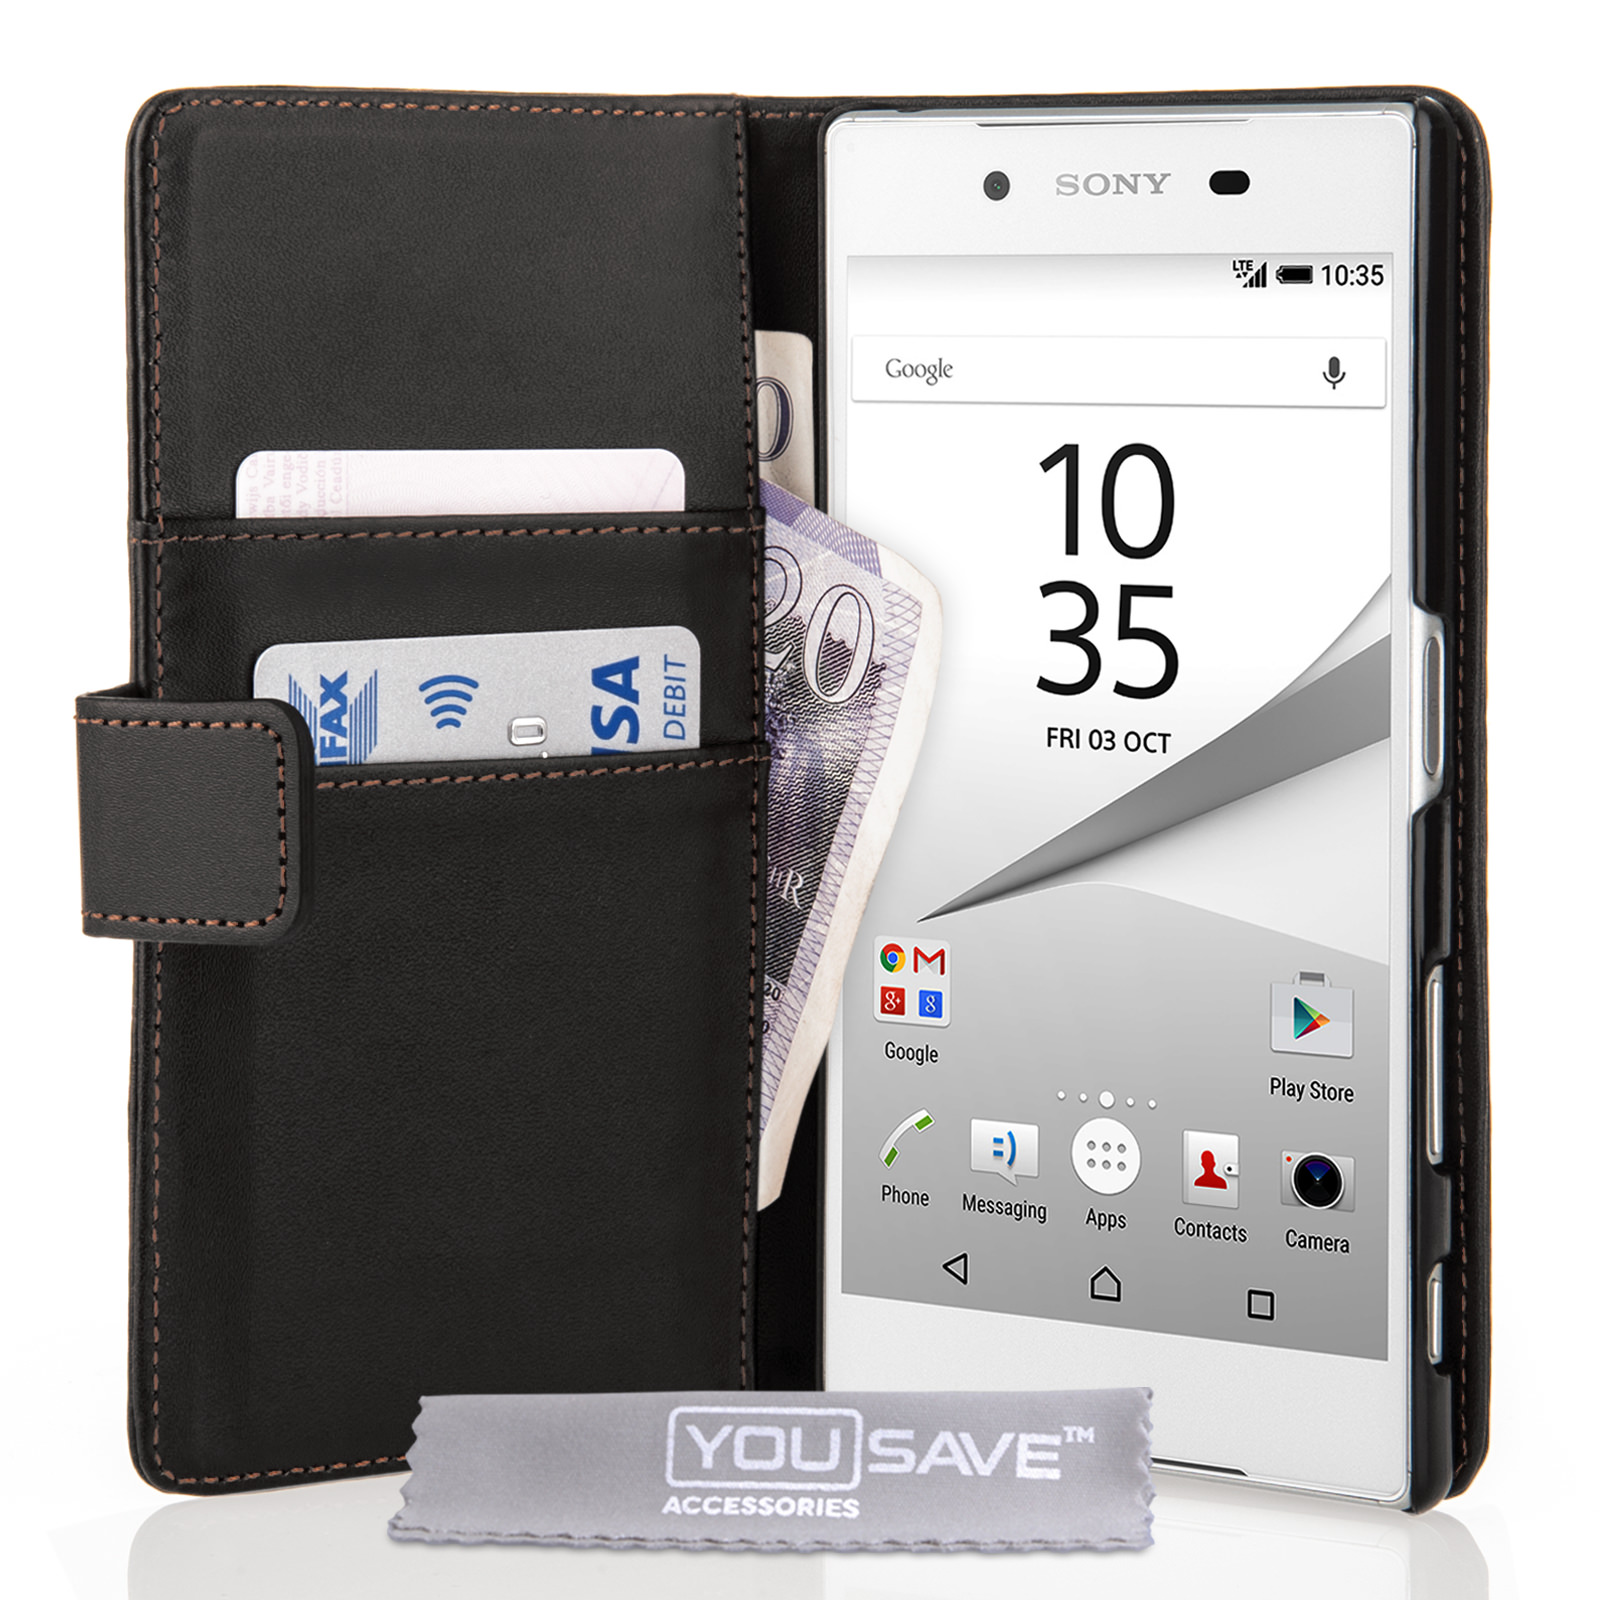 YouSave Accessories Sony Xperia Z5 Leather-Effect Wallet Case - Black